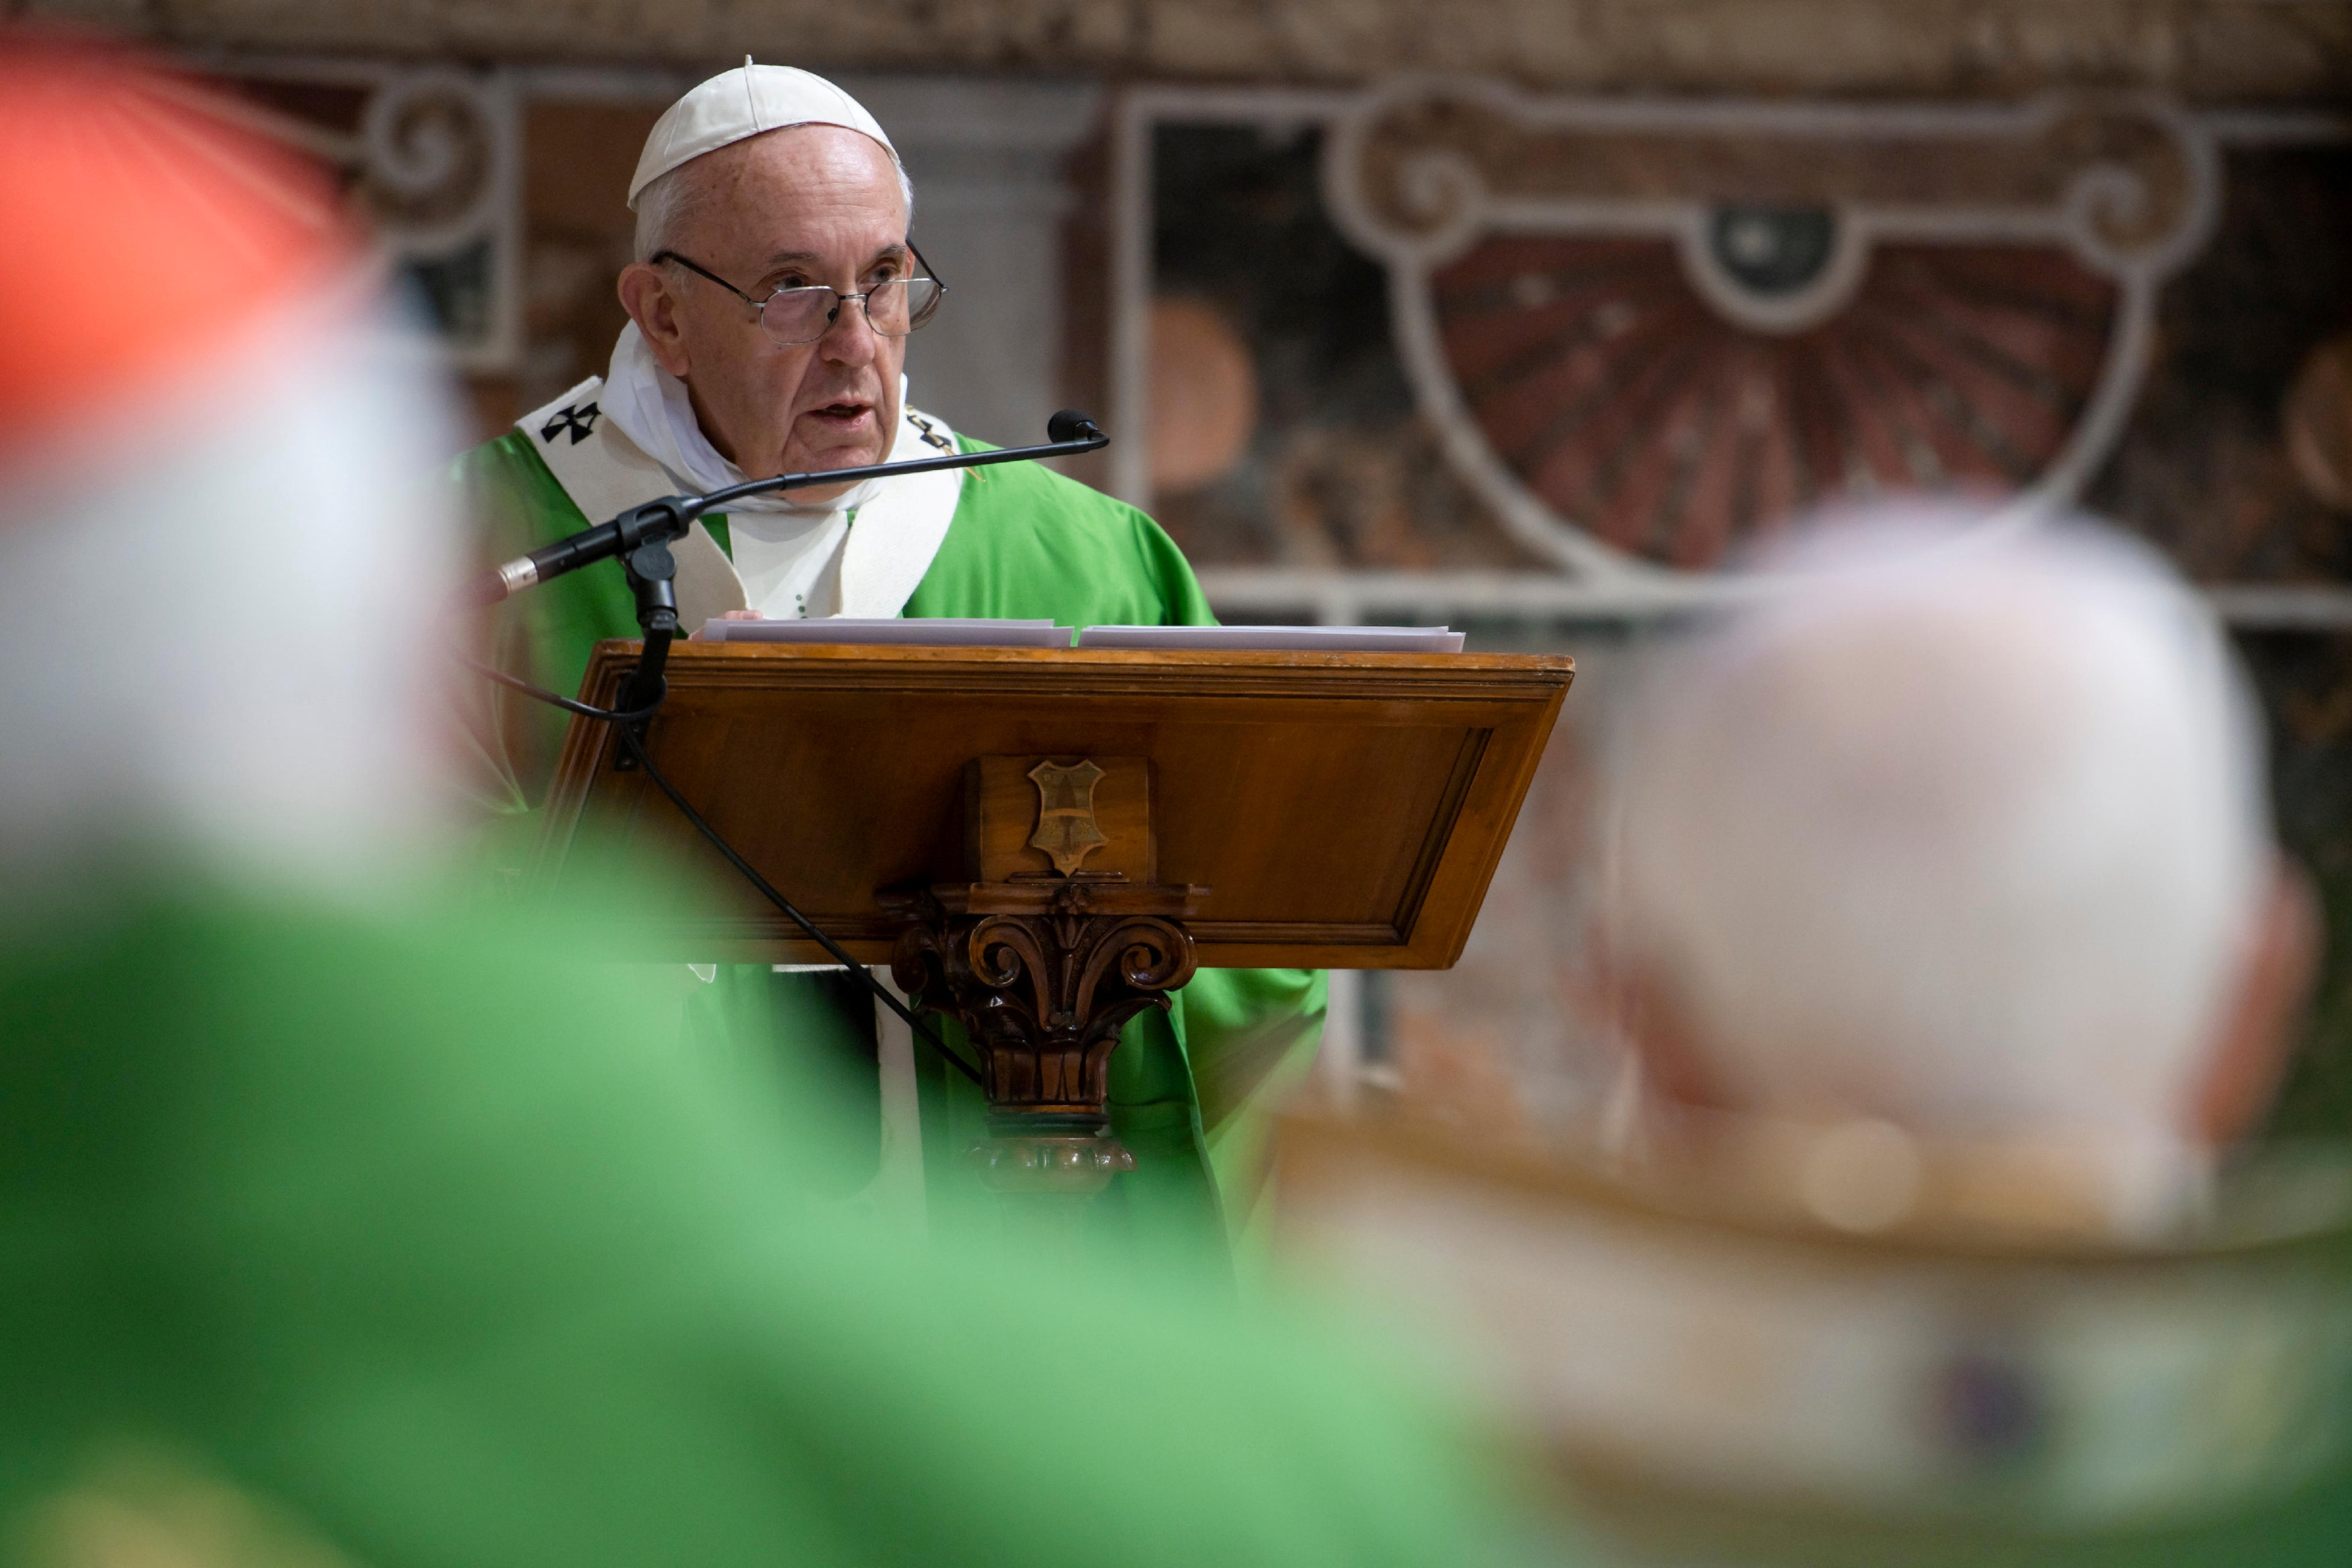 Pope Francis wants Catholic priests to undergo psychological